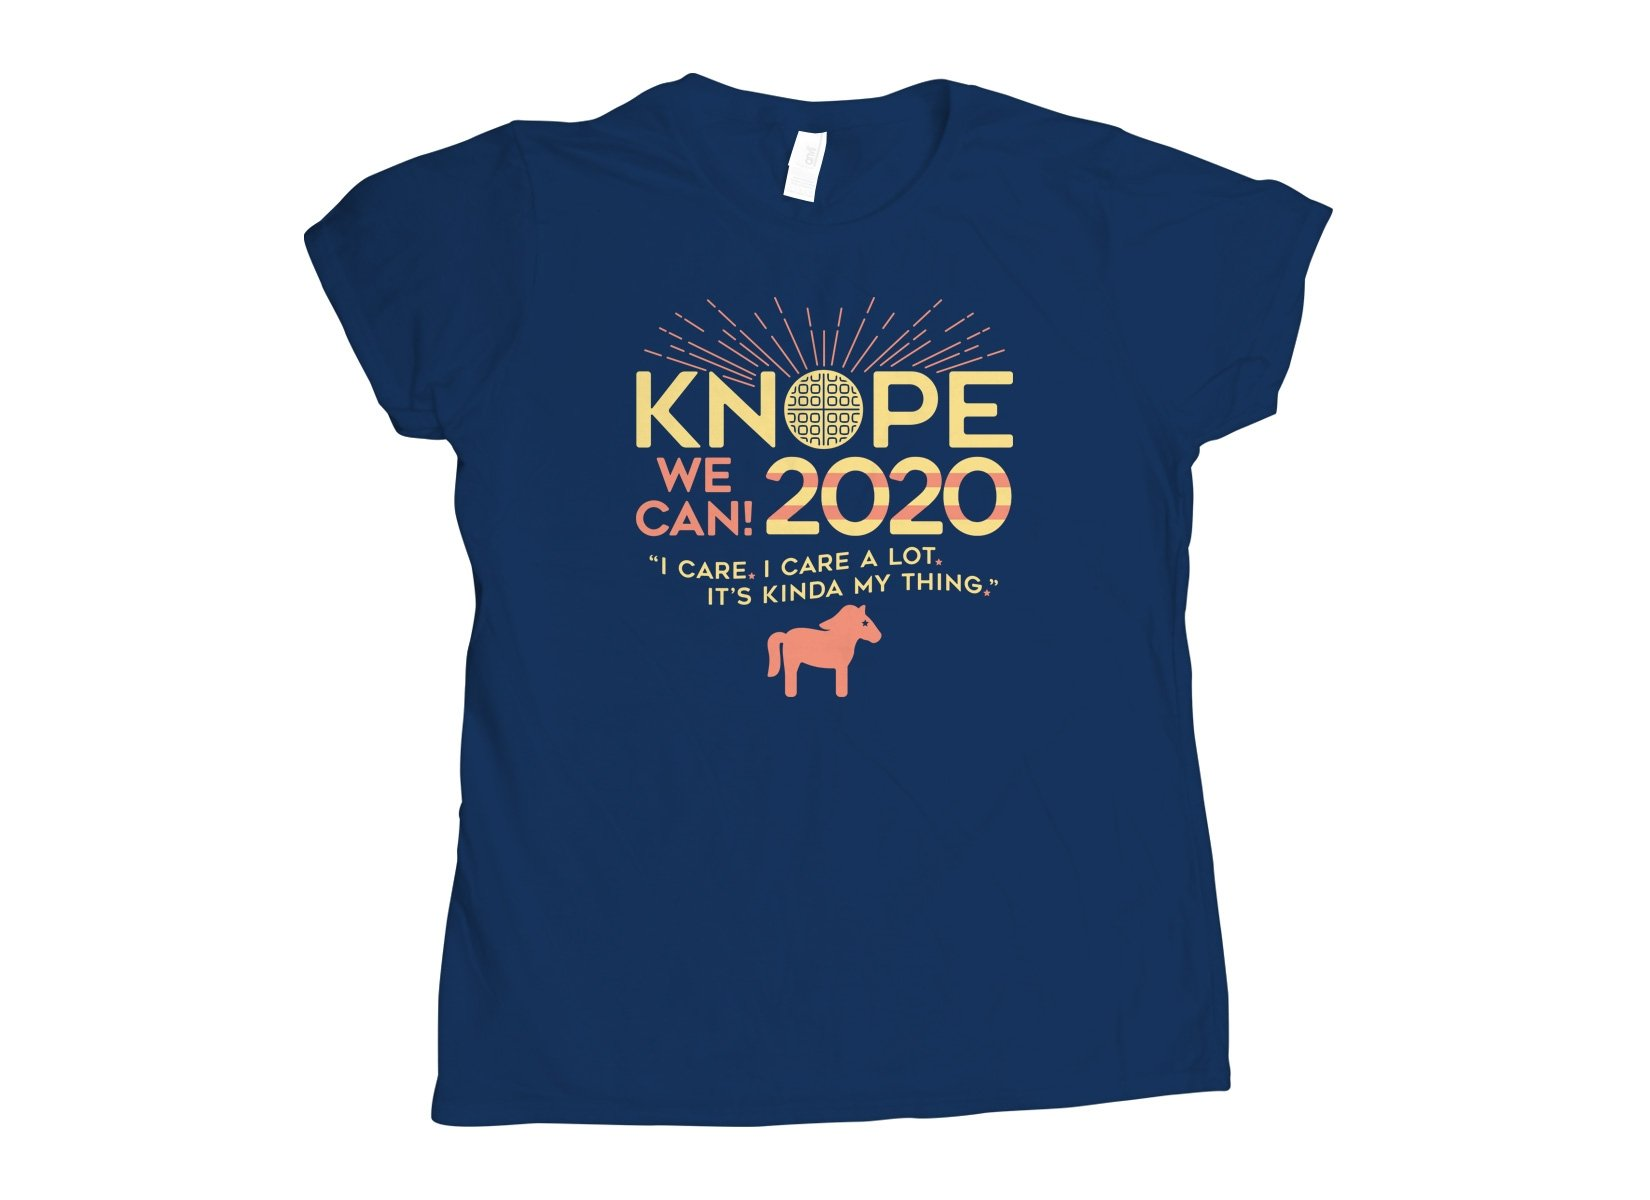 Knope 2020 on Womens T-Shirt